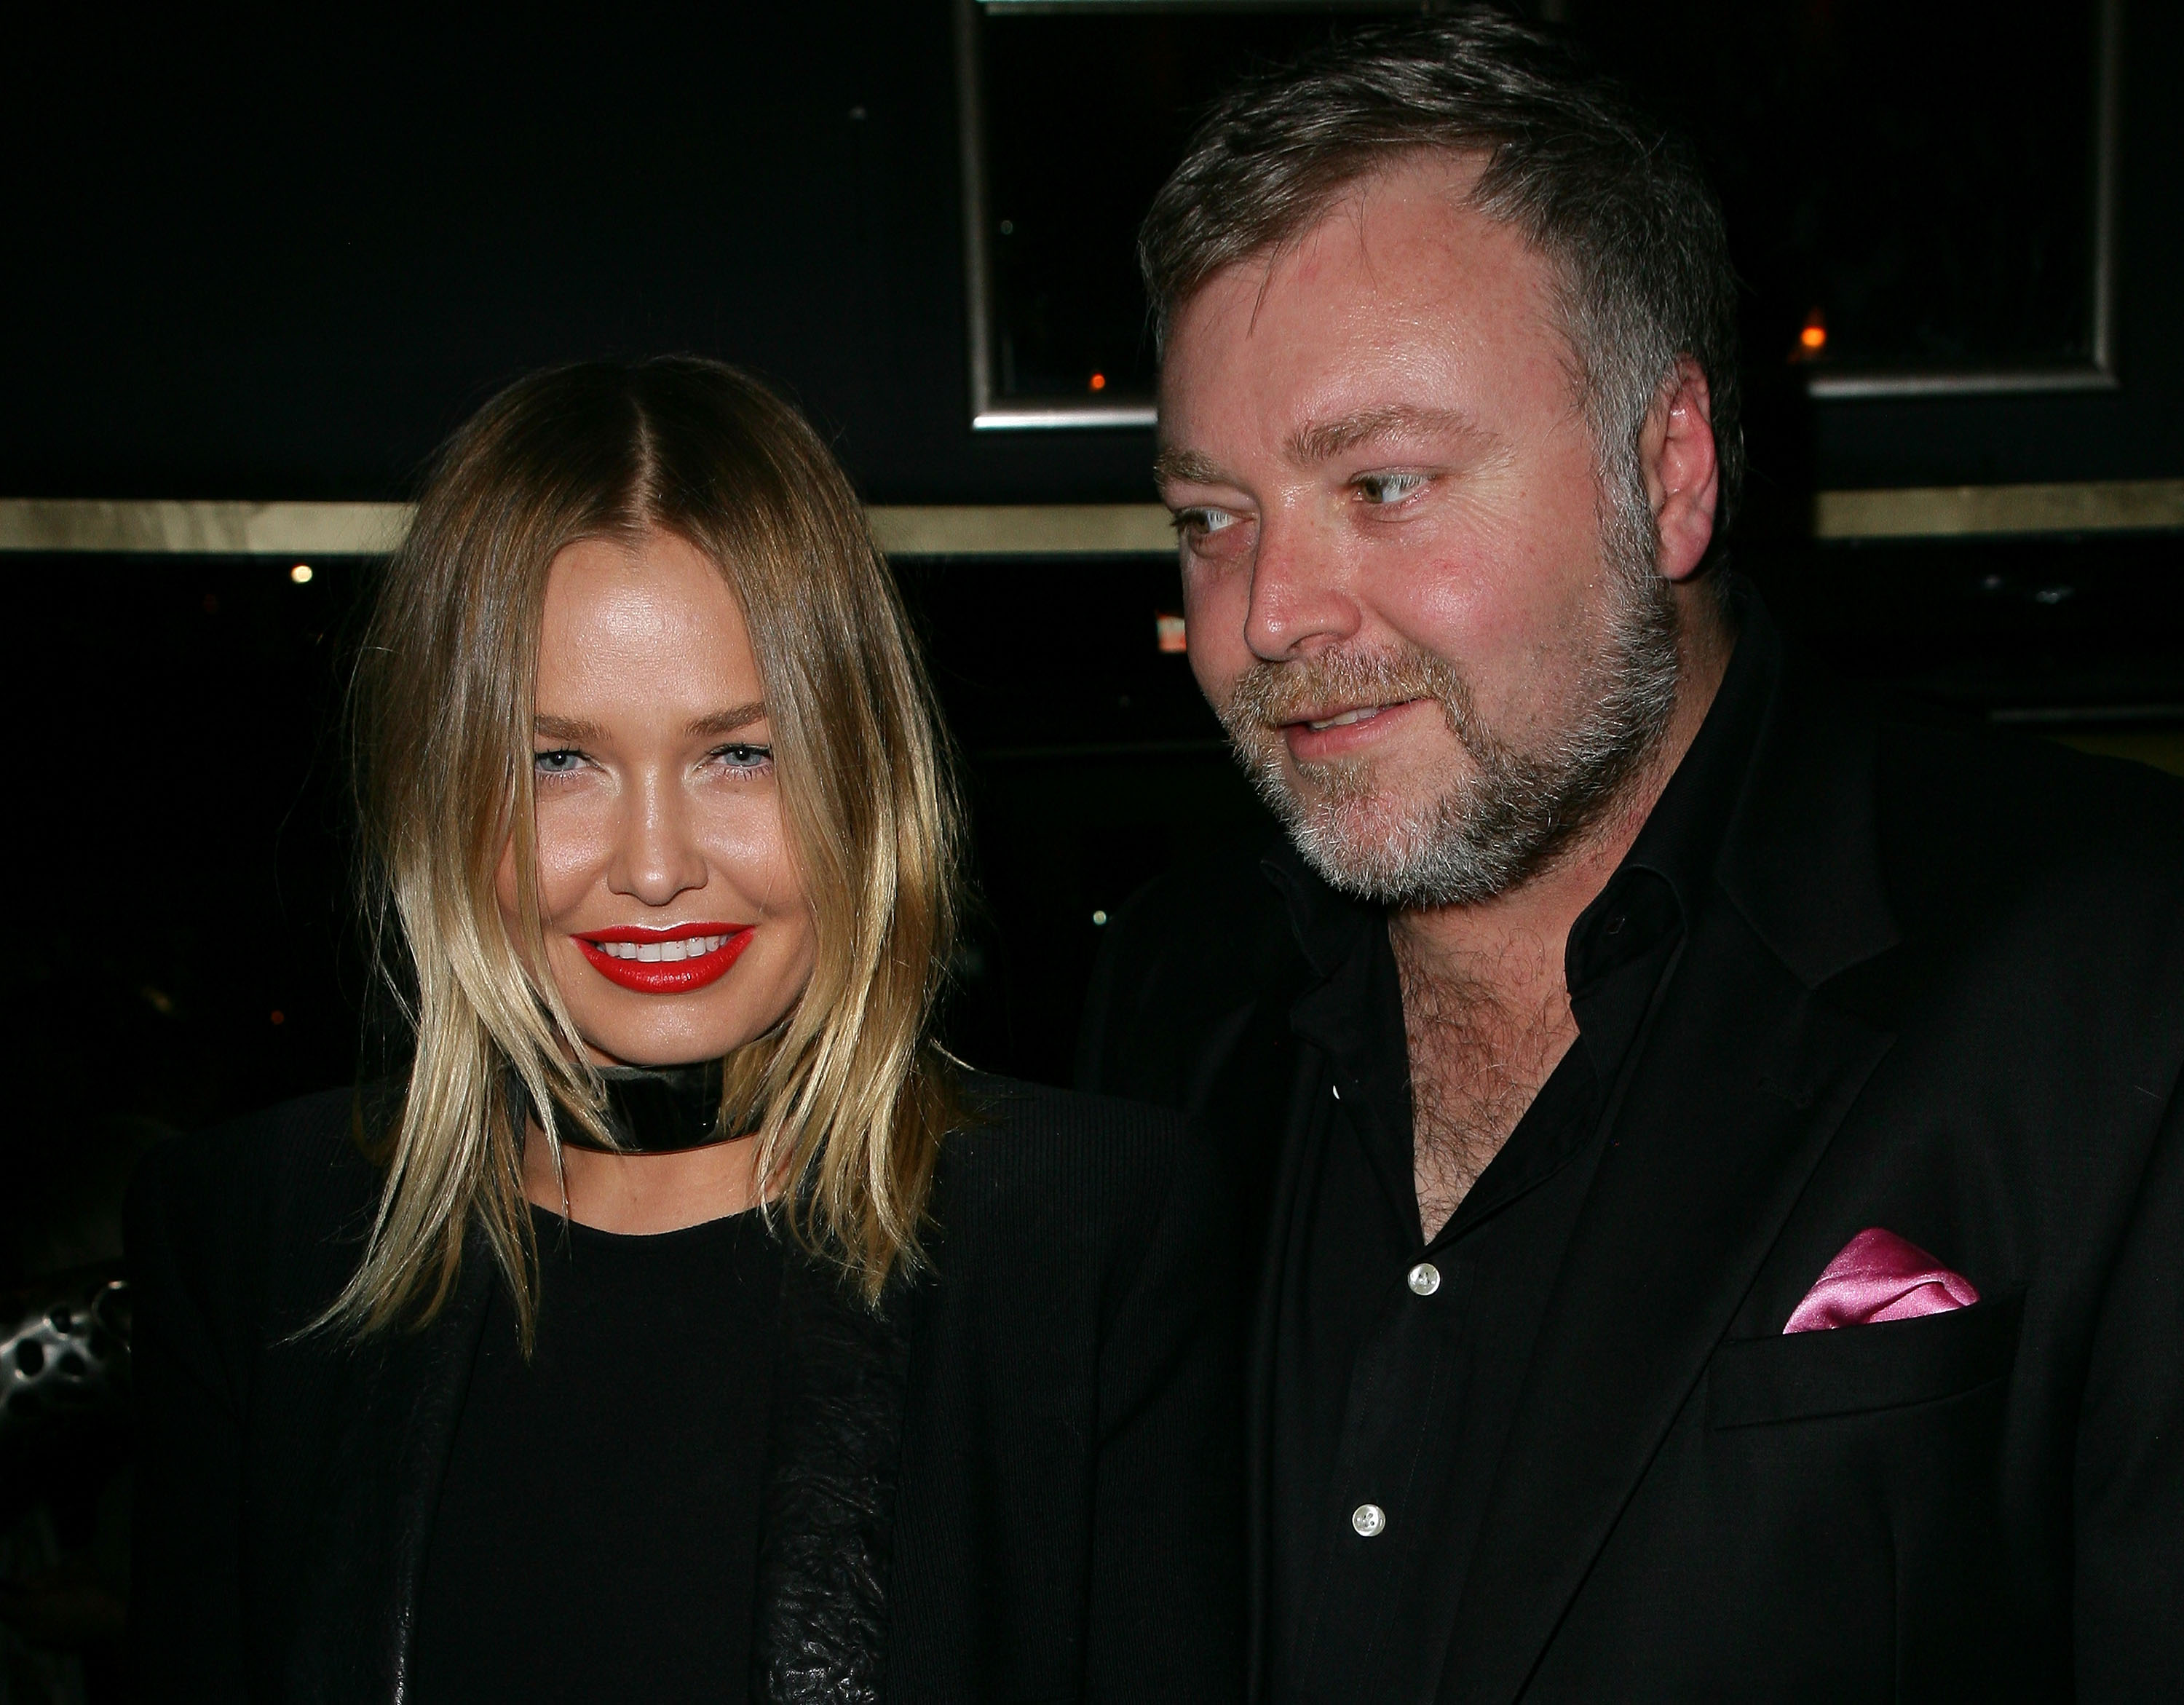 Kyle Sandilands Celebrates His 40th Birthday In Sydney